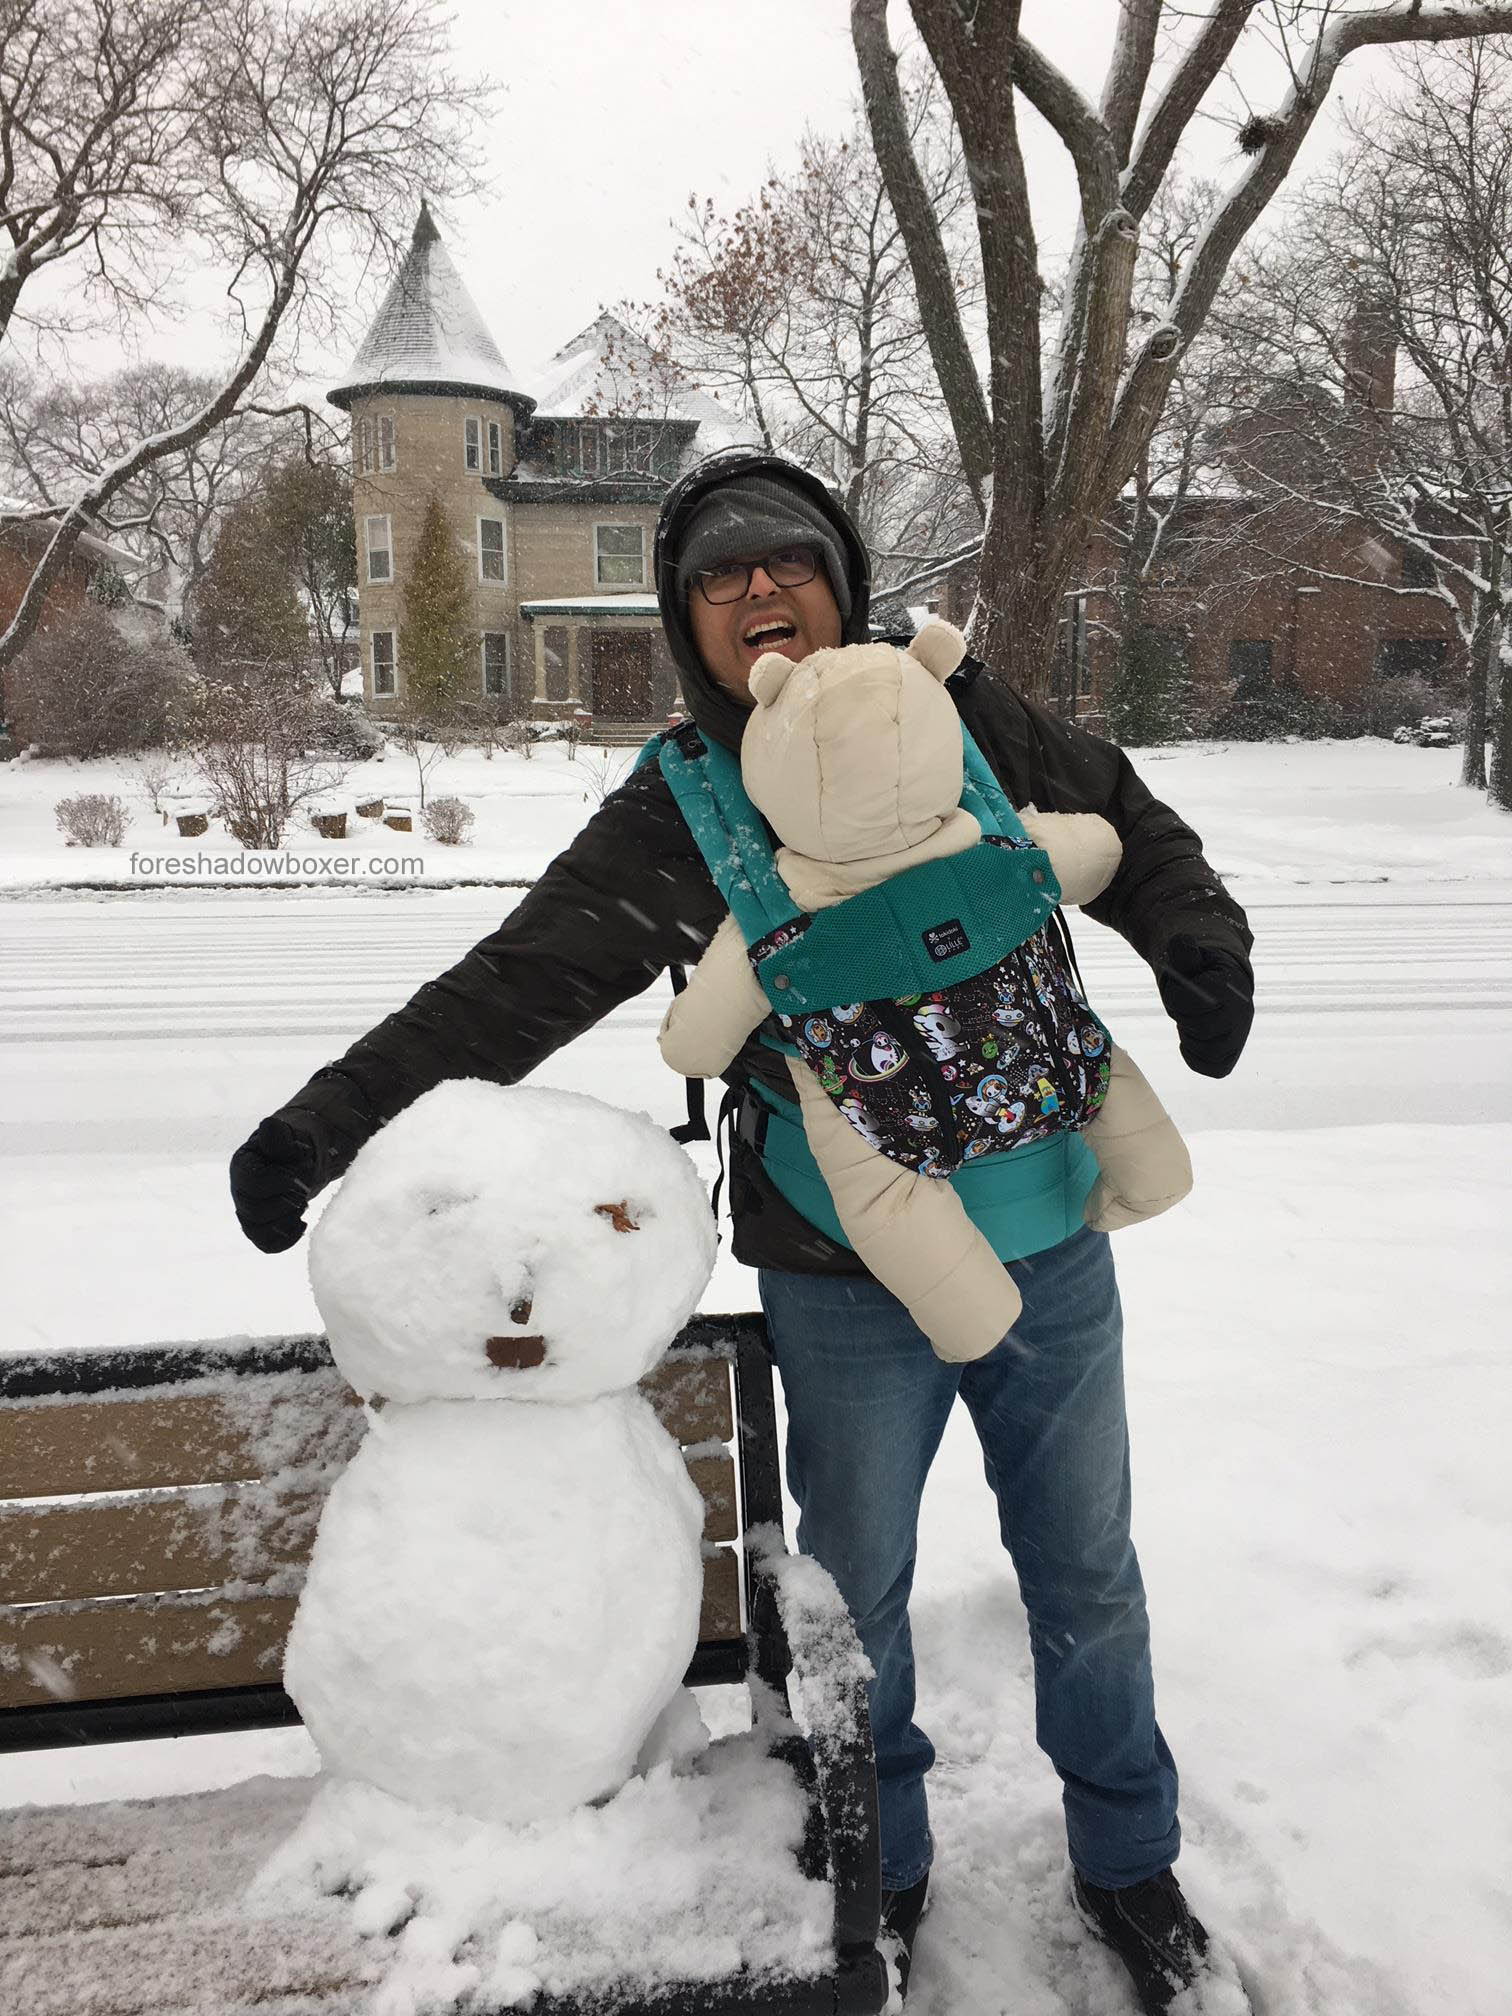 """We might've taken the """"All Seasons"""" part of the Lillebaby carrier name a little too literally here, but we've found it helps keep our baby warm in the winter and cooler in the summer (with an extra panel you can unzip and fold down). Not to mention, it offers the best lumbar support of those we've tried."""